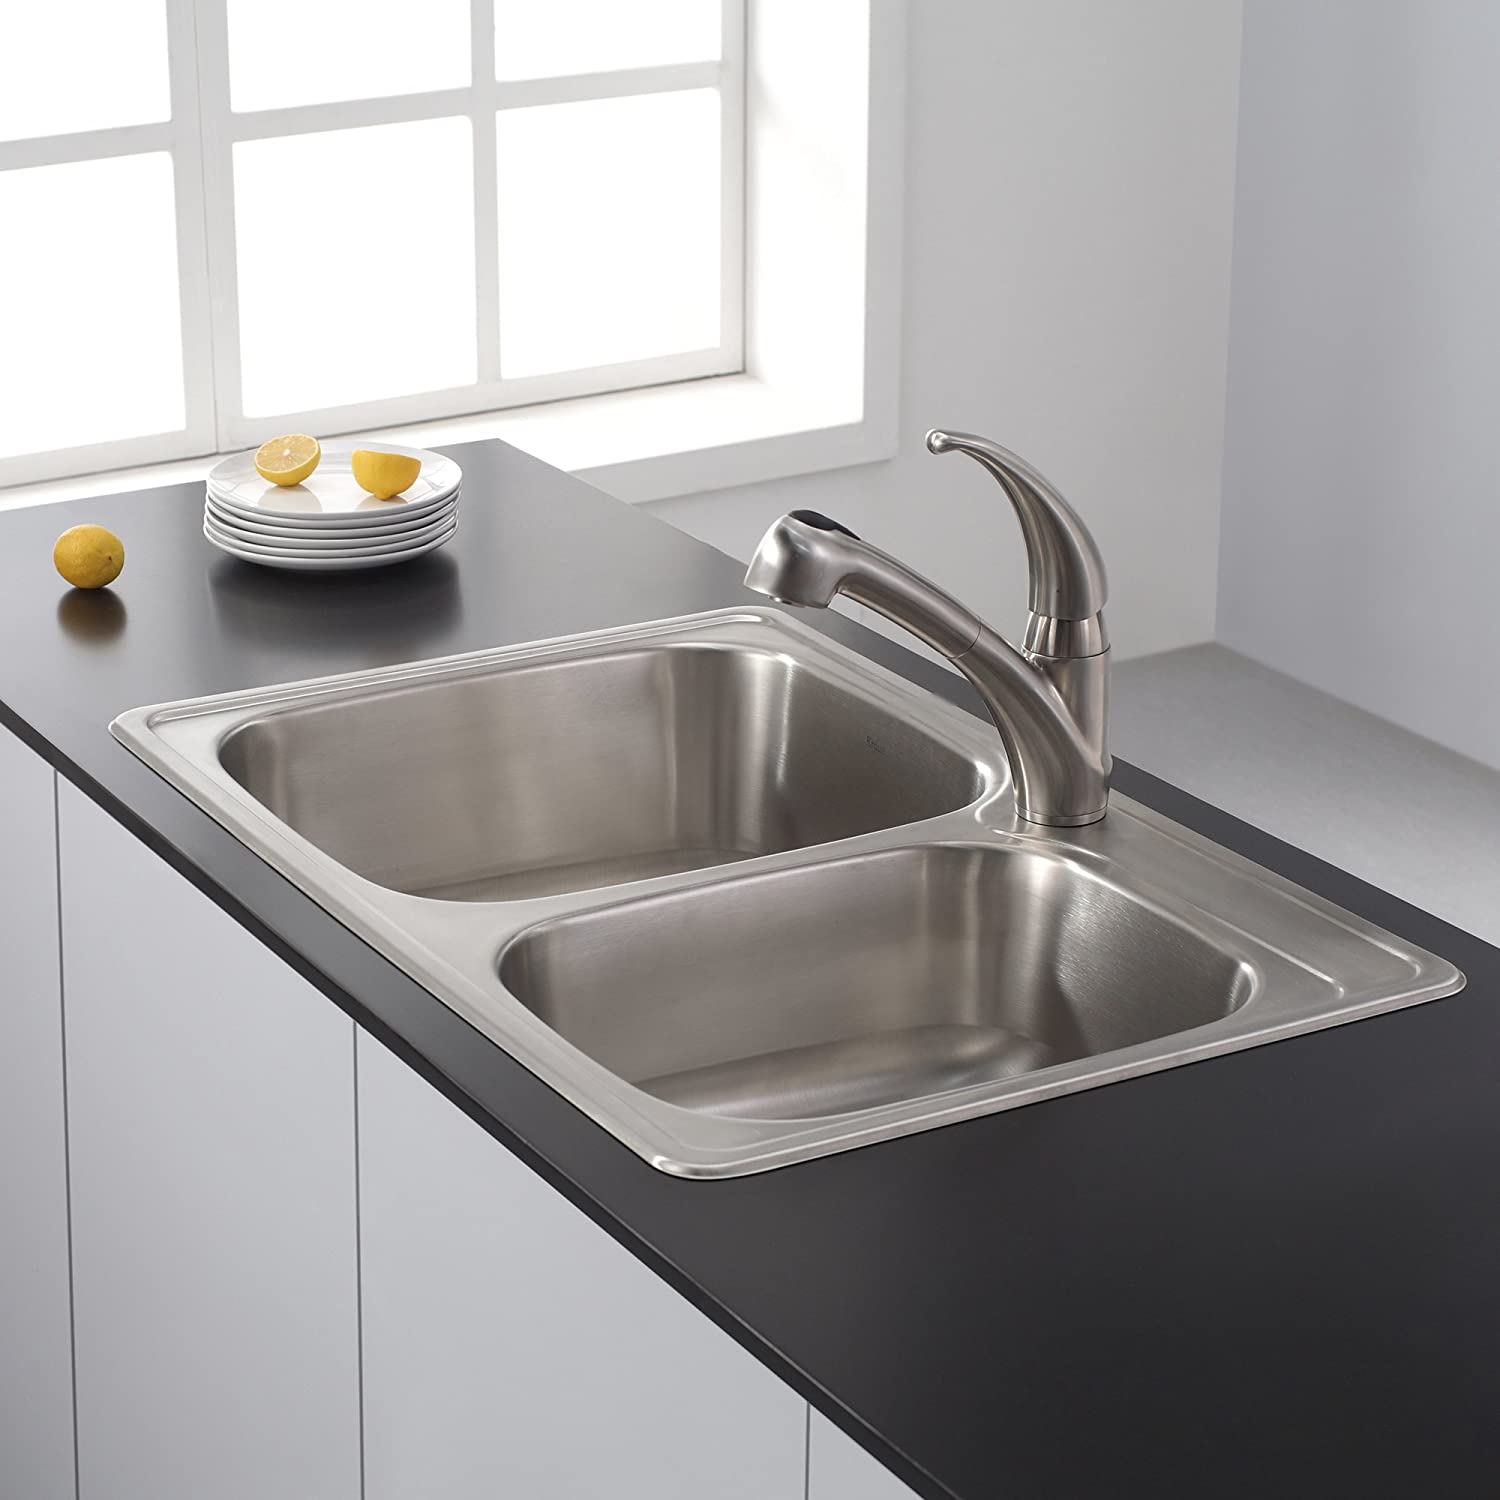 stunning sinks home steel kitchen pretty commercial stainless